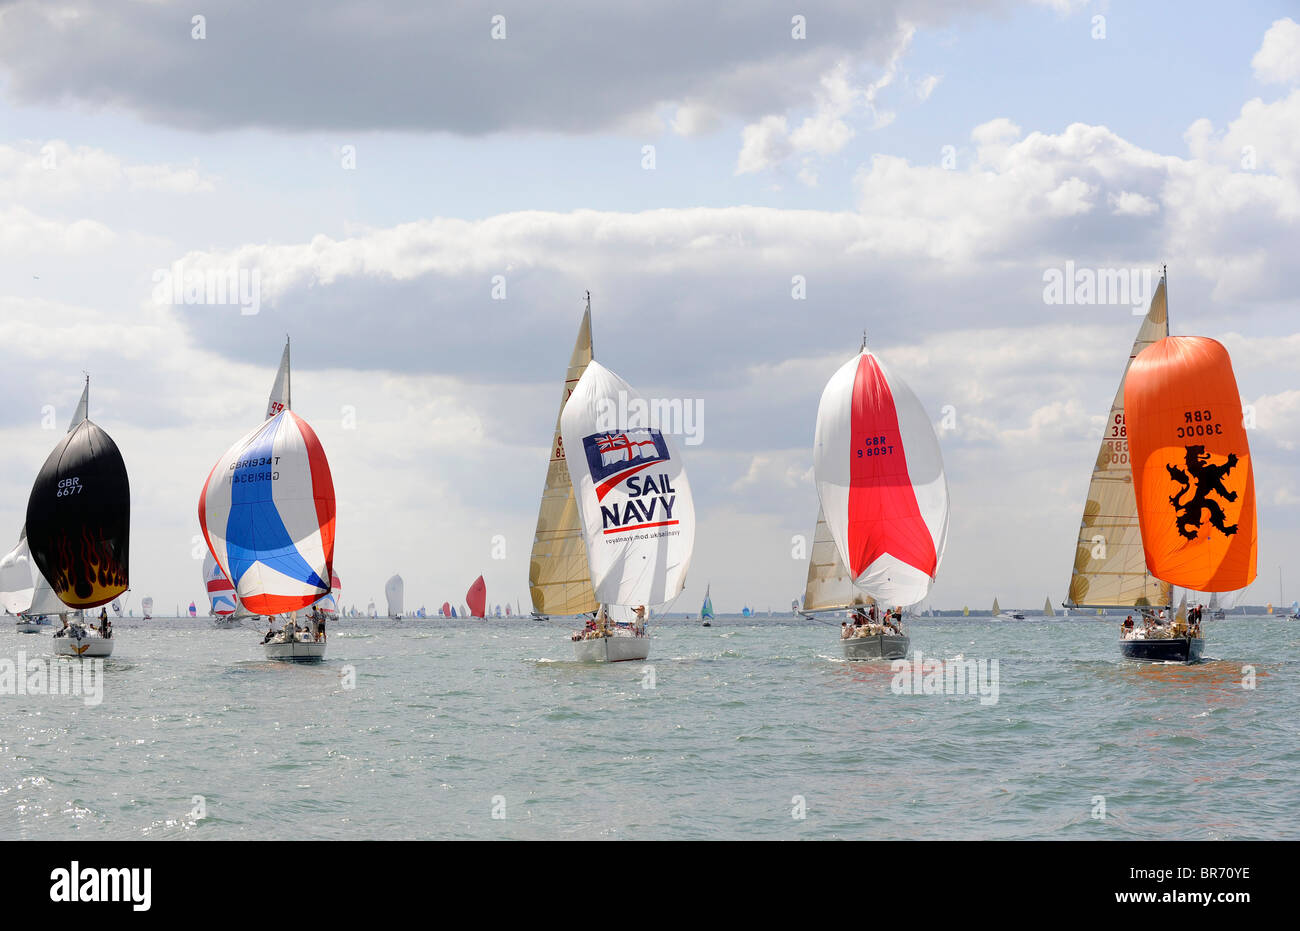 Fleet racing at Cowes Week, including 'Sixes and Sevens', 'Tactix', 'Sail Navy Gauntlet', - Stock Image